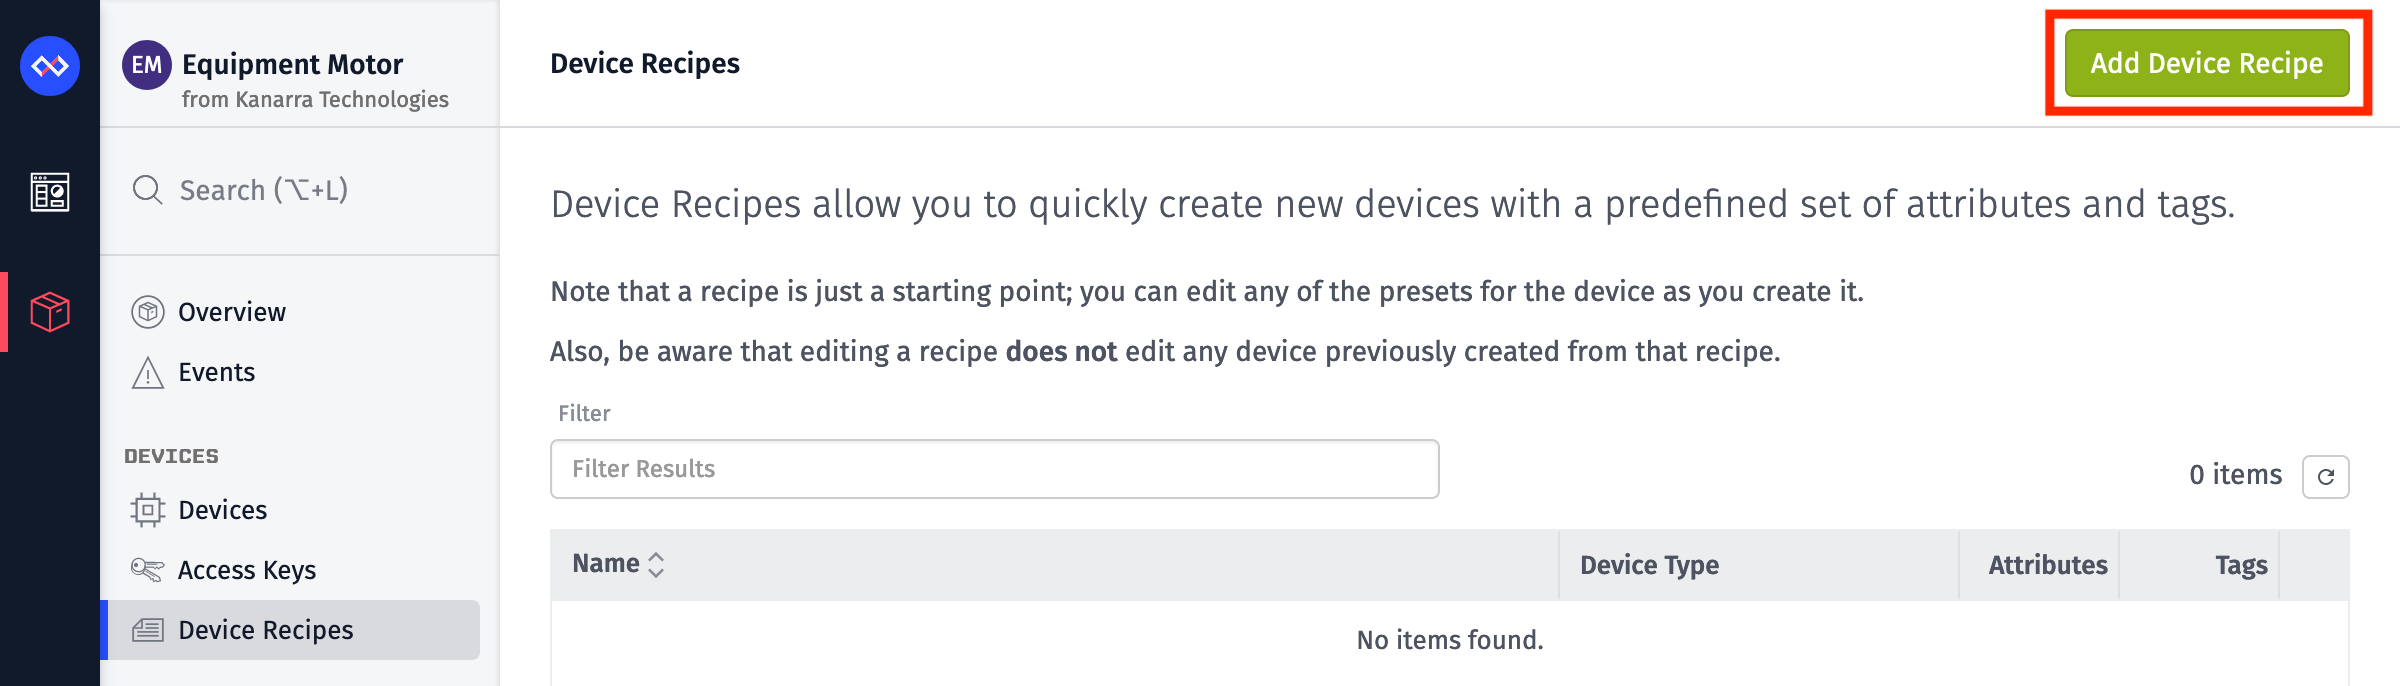 Add Device Recipe